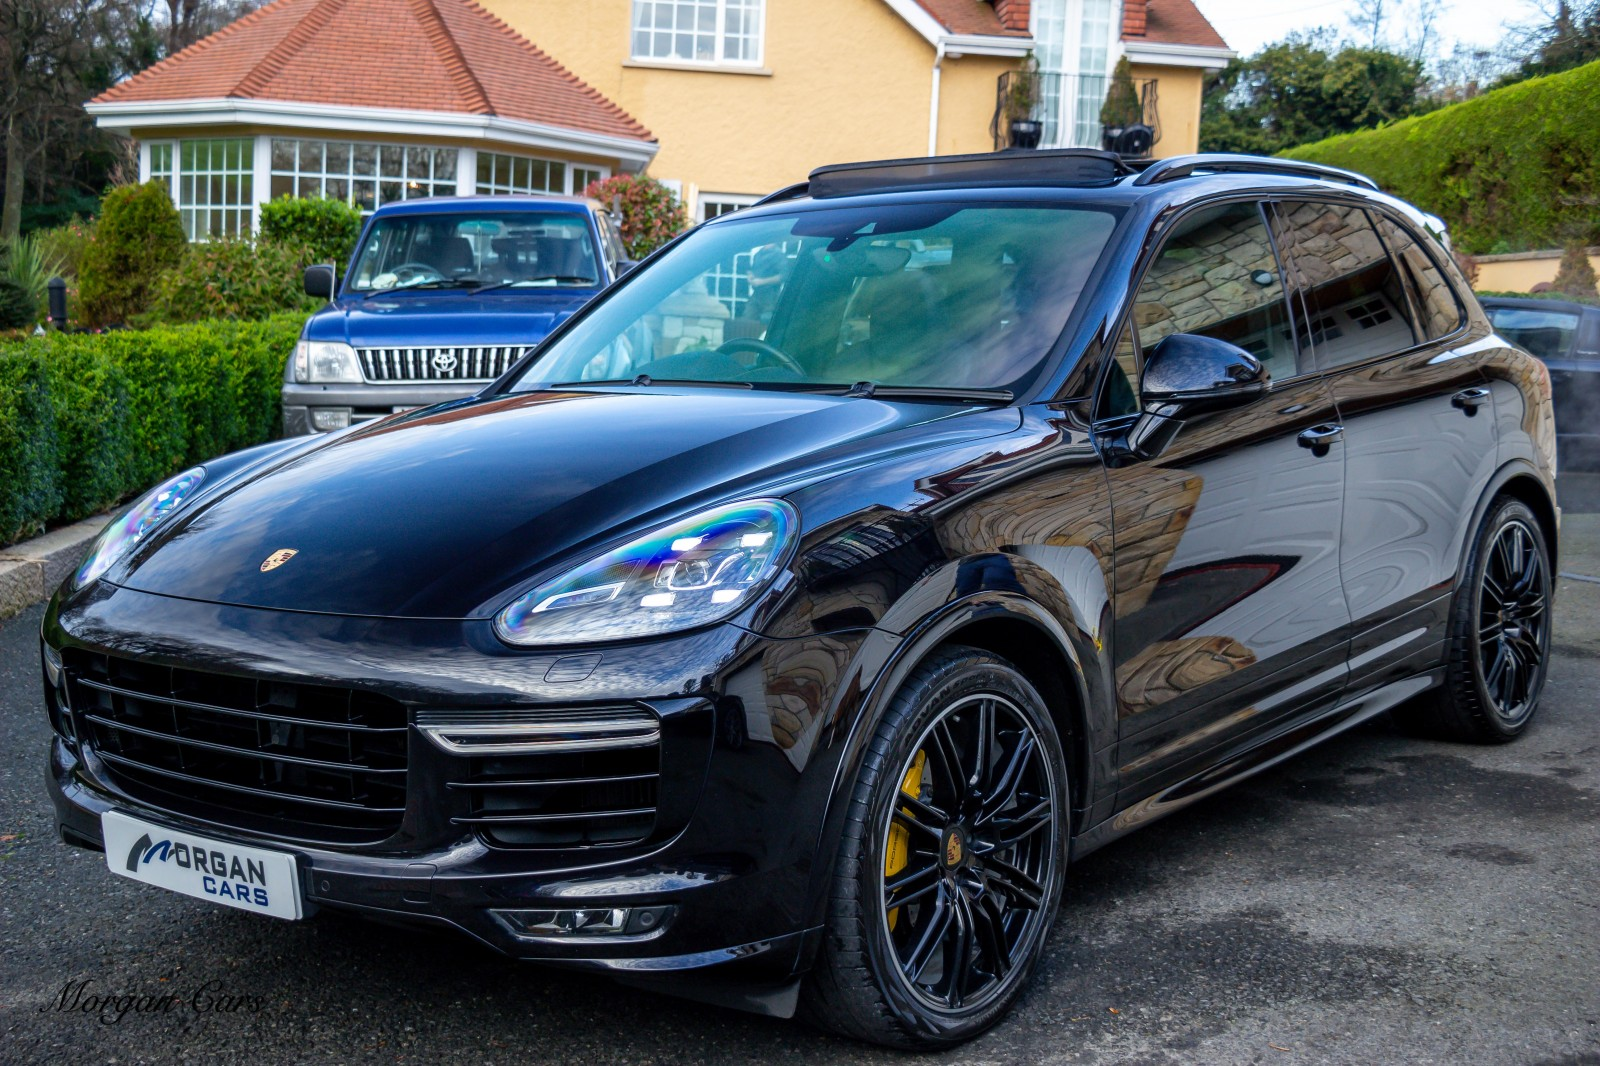 2016 Porsche Cayenne V8 S TURBO TIPTRONIC S Petrol Automatic – Morgan Cars 9 Mound Road, Warrenpoint, Newry BT34 3LW, UK full